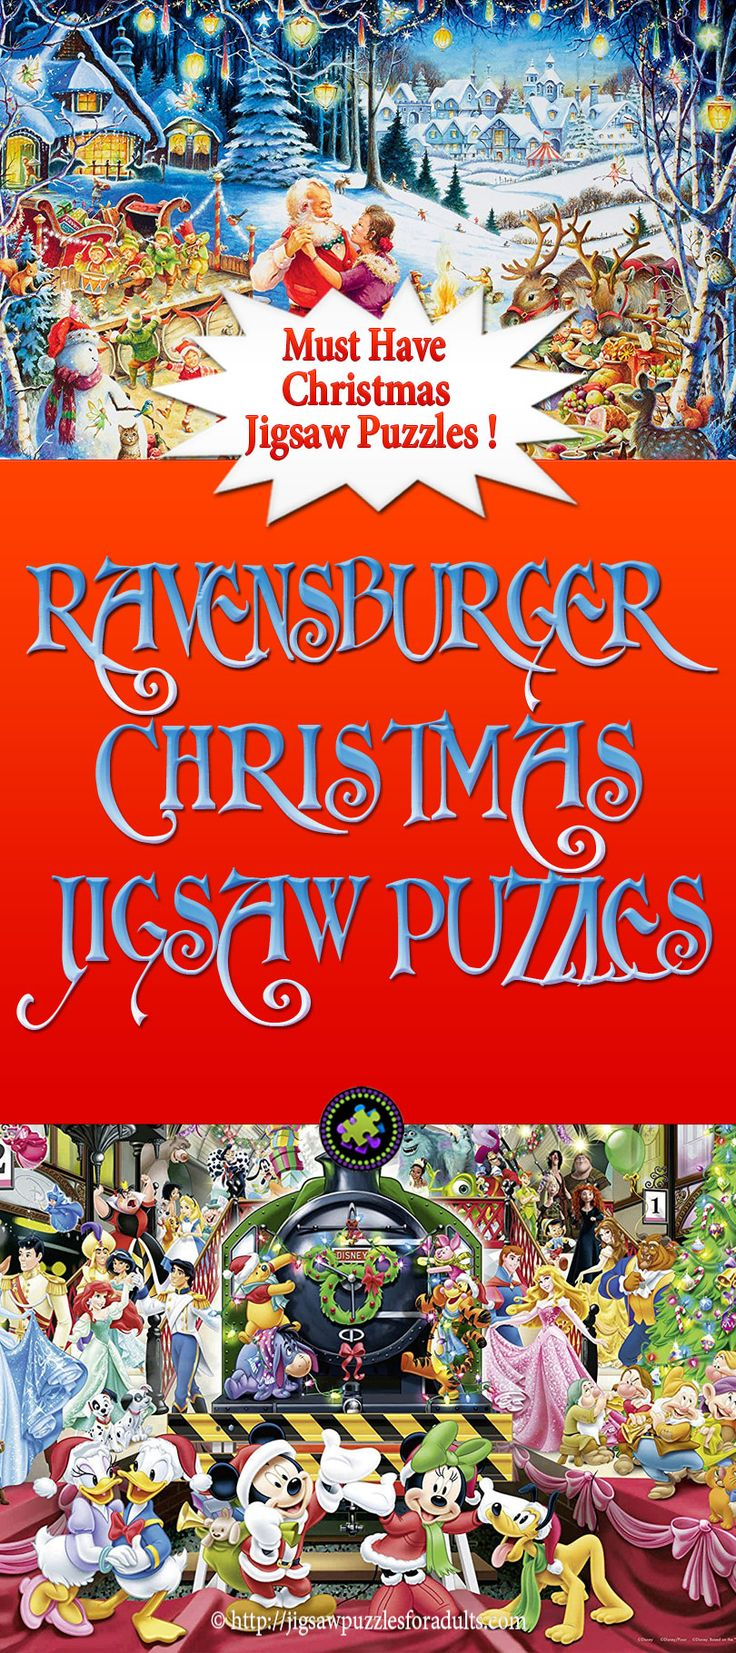 Ravensburger Christmas Jigsaw Puzzles are perfect hobby for the holidays or anytime of the year. Ravensburger jigsaw puzzles are high quality and you can choose from a wide variety of jigsaw puzzles for adults and kids. These puzzles are ideal for the whole family.